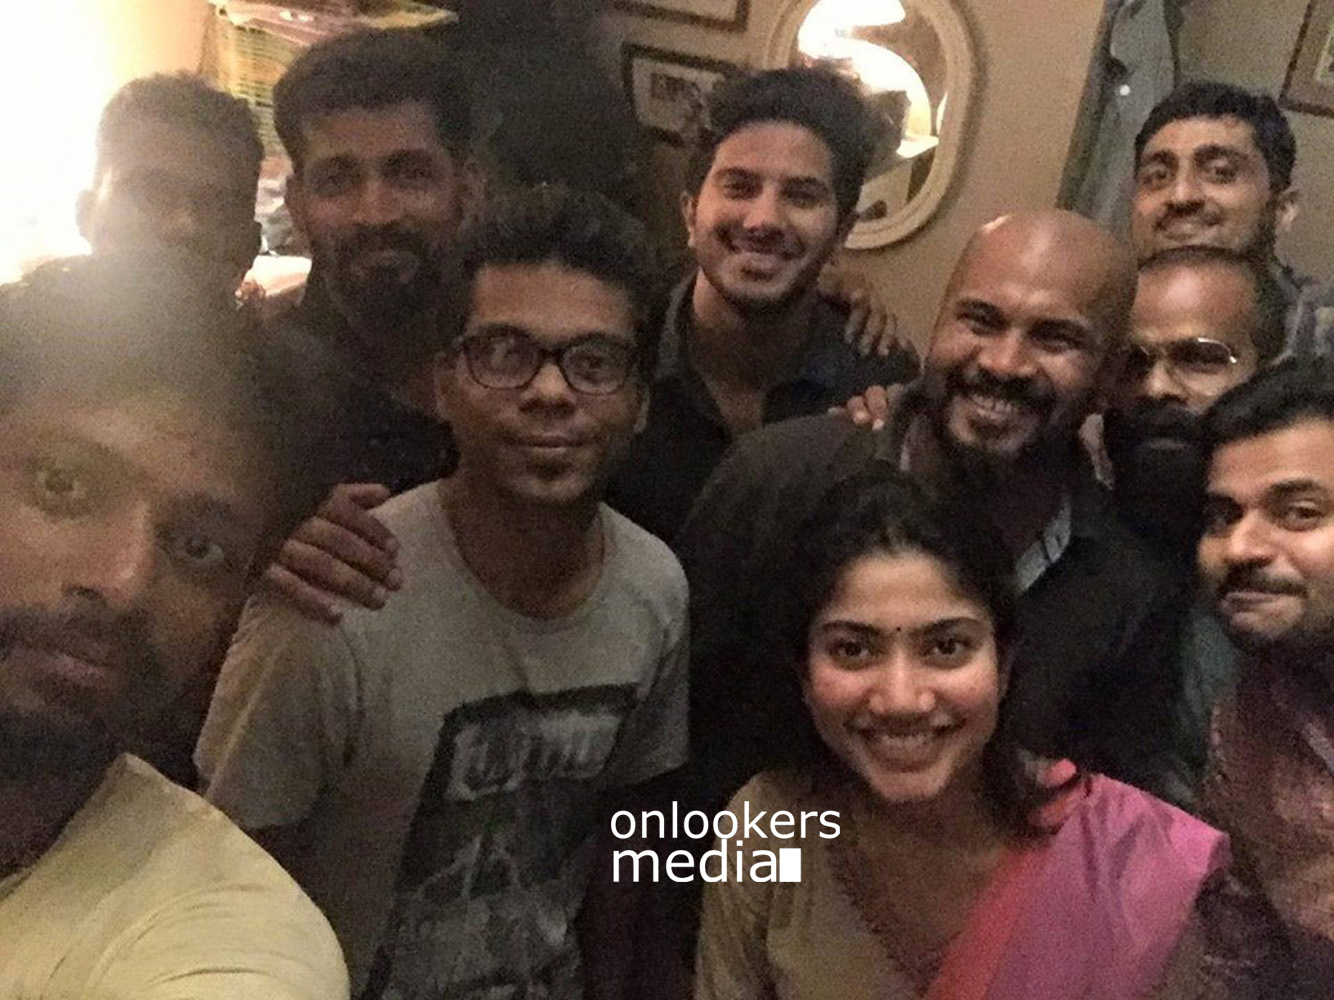 Kali, Kali malayalam movie, dulquer in Kali, sai pallavi in Kali, dulquer sai pallavi Kali, latest movie news, dulquer sameer thahir movie